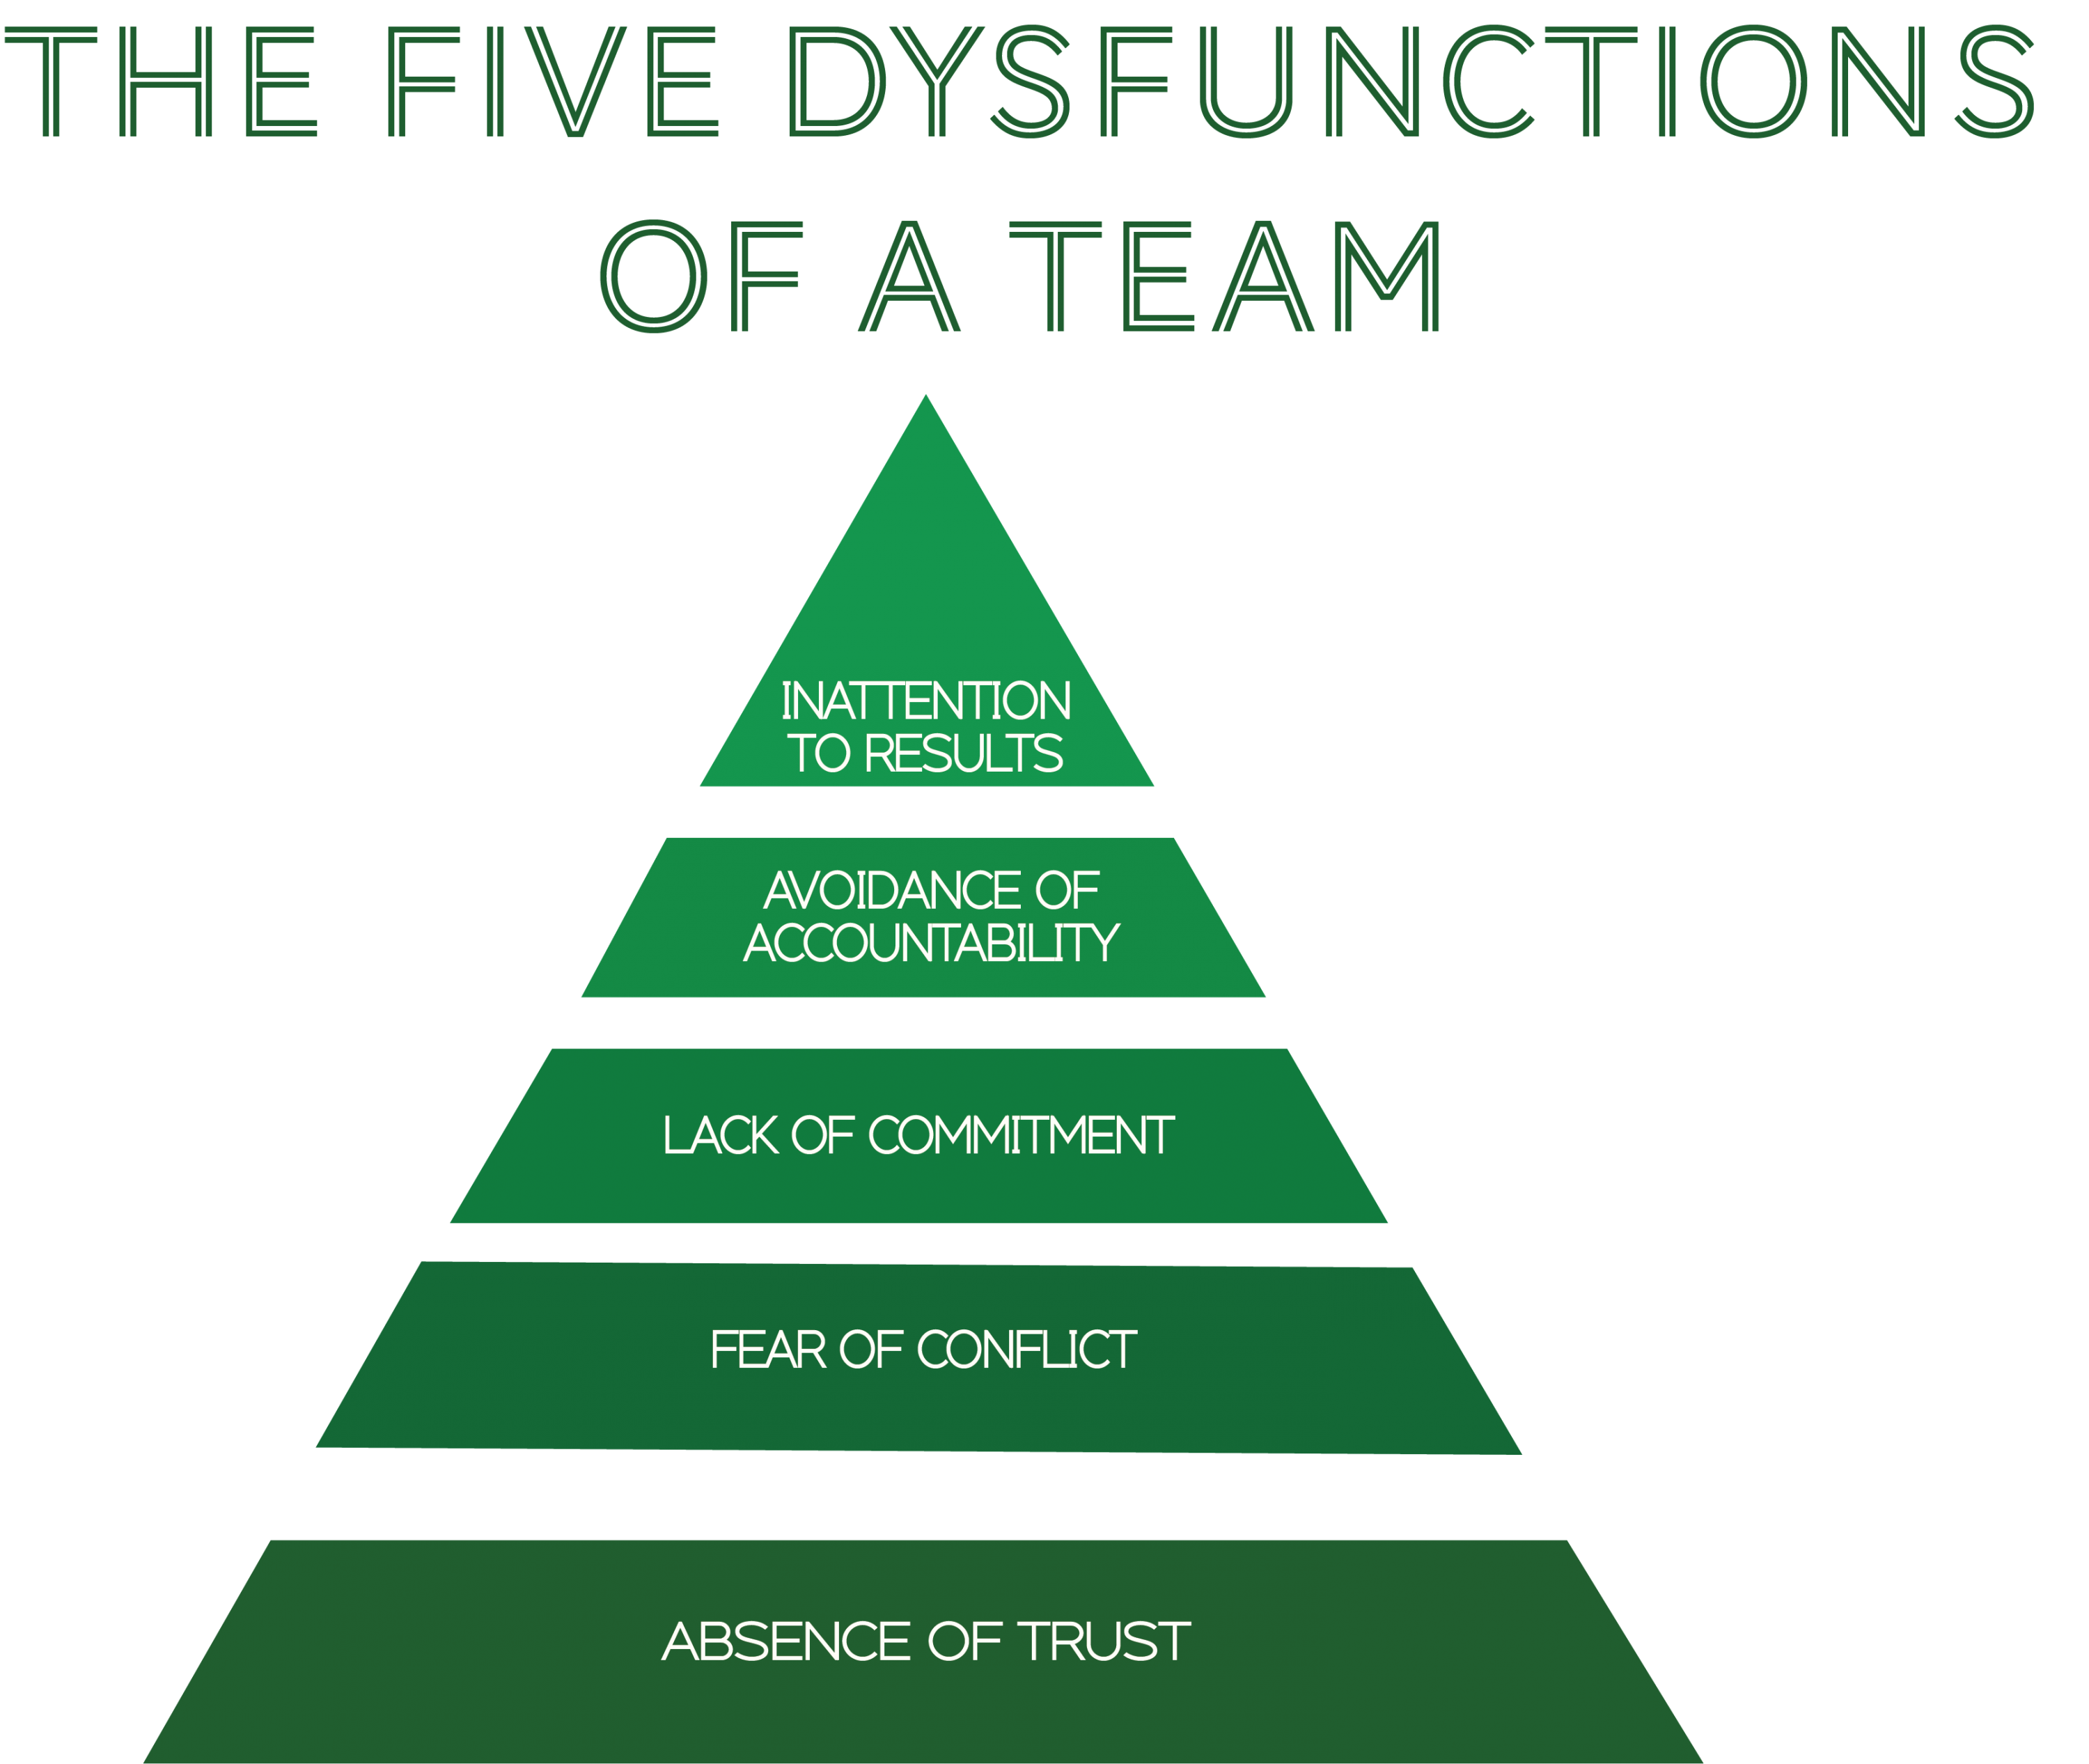 The Five Dysfunctions Of A Team Is A Book By Patrick Lencioni Currently We Are Utilizing This Book And Its Concepts To Build Trust In It And Come Together